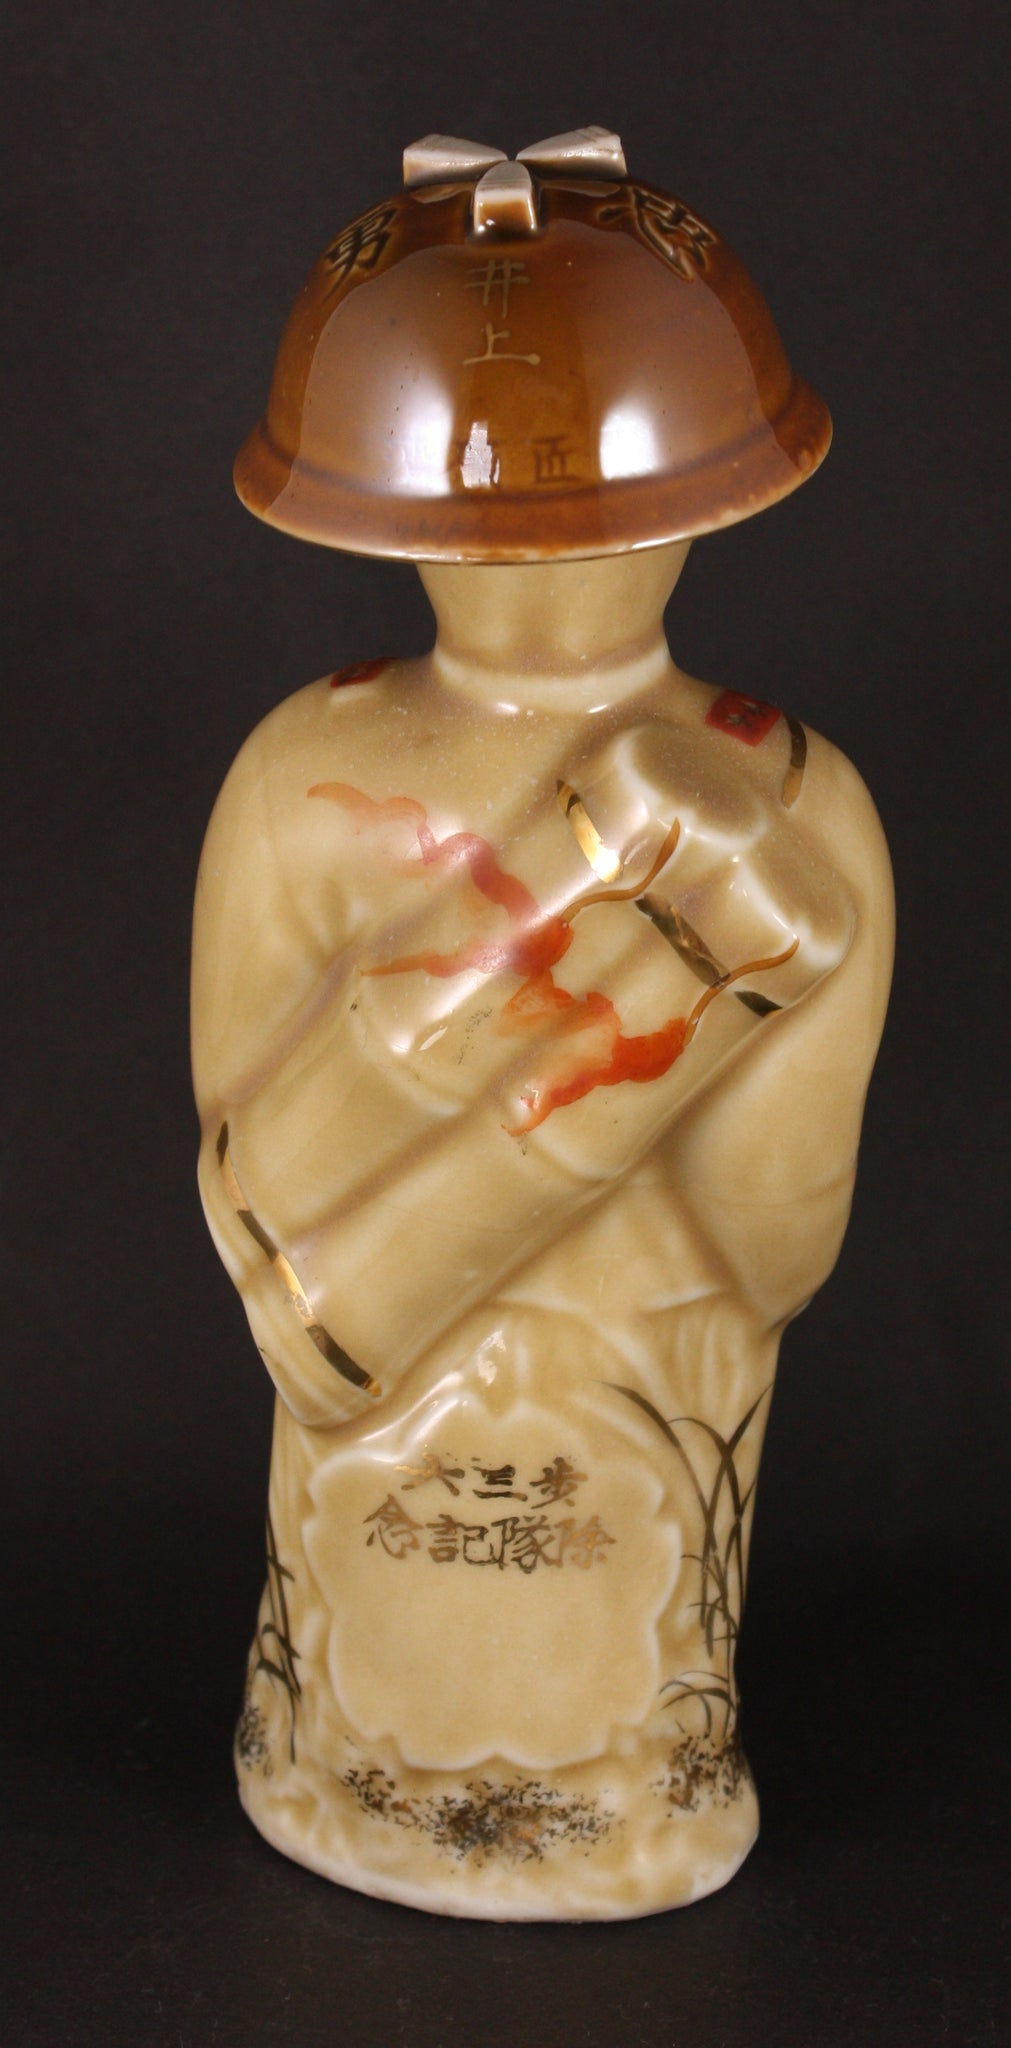 Very Rare Antique Japanese Military Soldier Shaped Manchukuo Army Sake Bottle